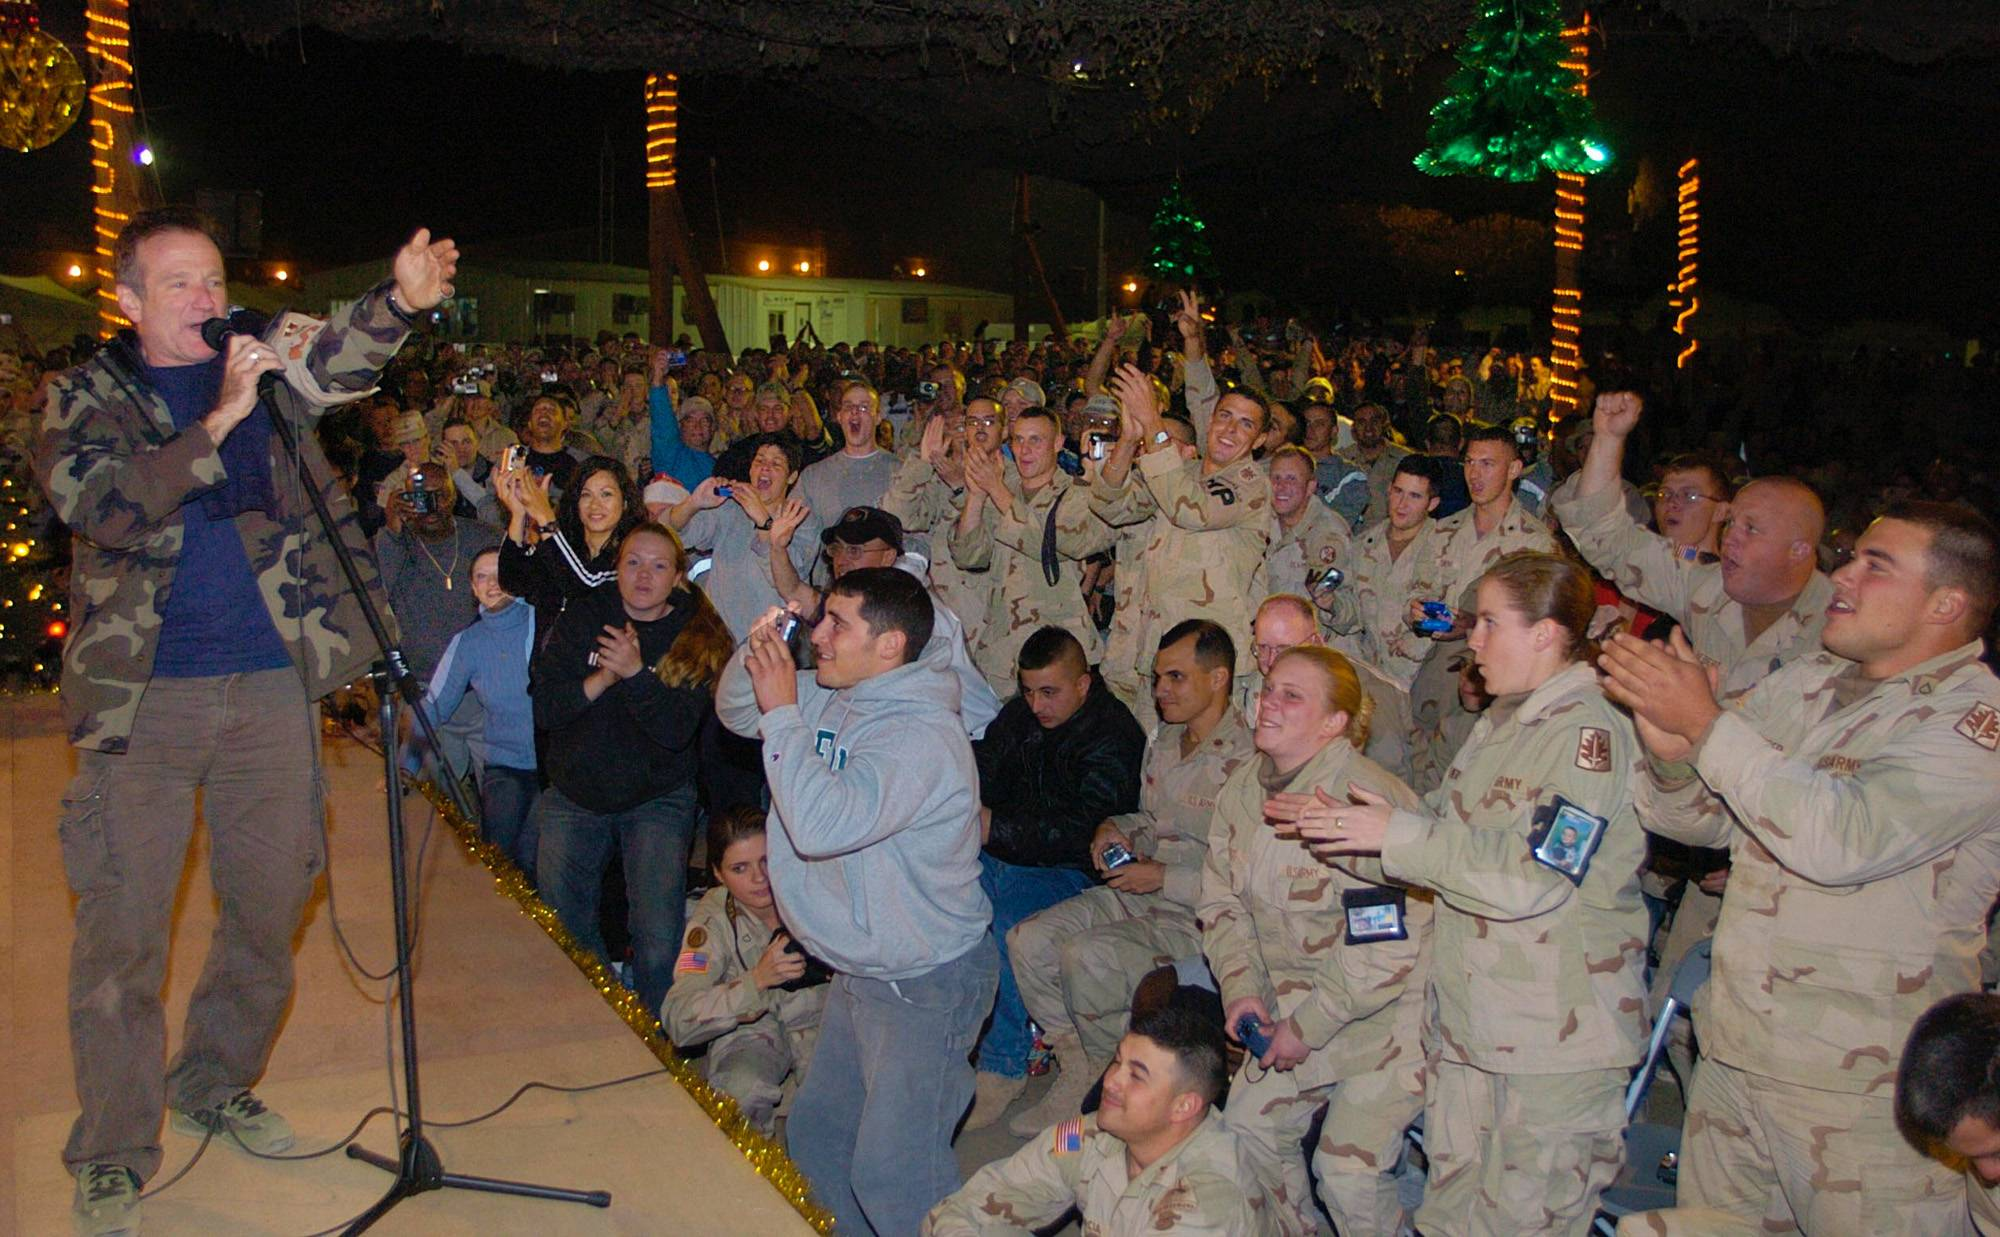 Comedian Robin Williams, wearing a camouflage jacket, entertains a cheering crowd of U.S. Army troops as part of a United Services Organiztion Holiday Tour, Monday, Dec. 15, 2003 at Camp Arifjan, Kuwait.